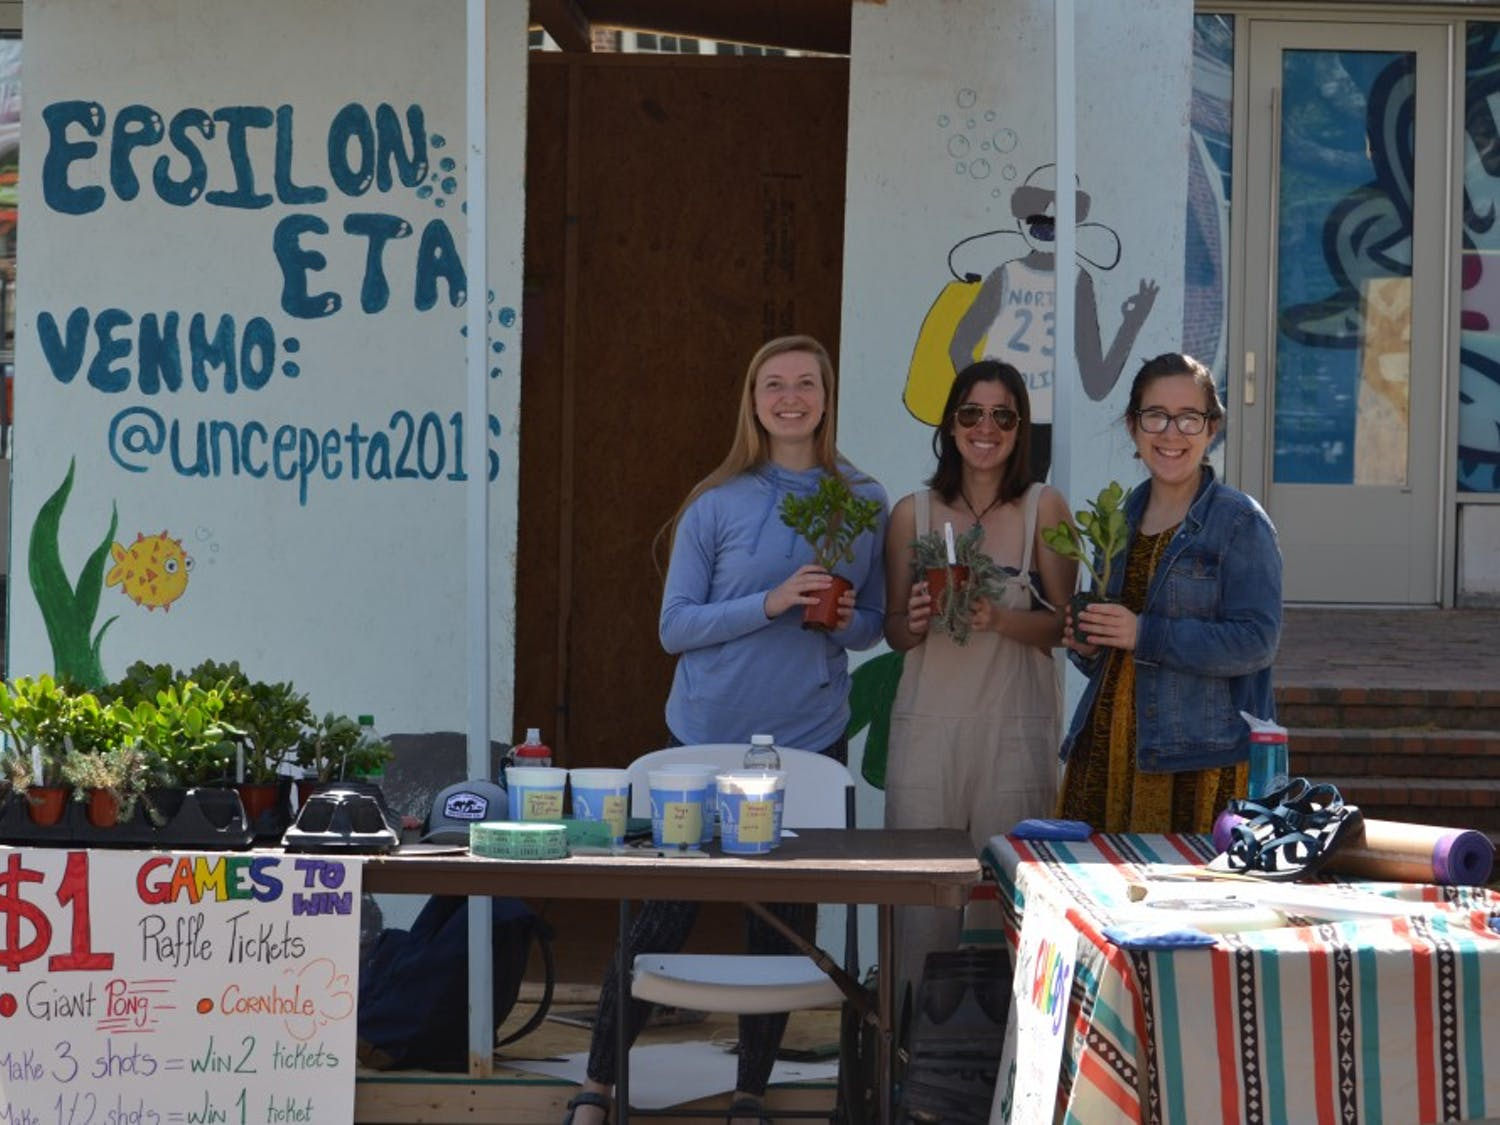 UNC students (from left to right) Emma Karlok, Allie Omens, and Elinor Solnick host the Epsilon ETA shack. Epsilon ETA raffled off various outdoor gear and sold succulents to raise money for Habitat for Humanity.